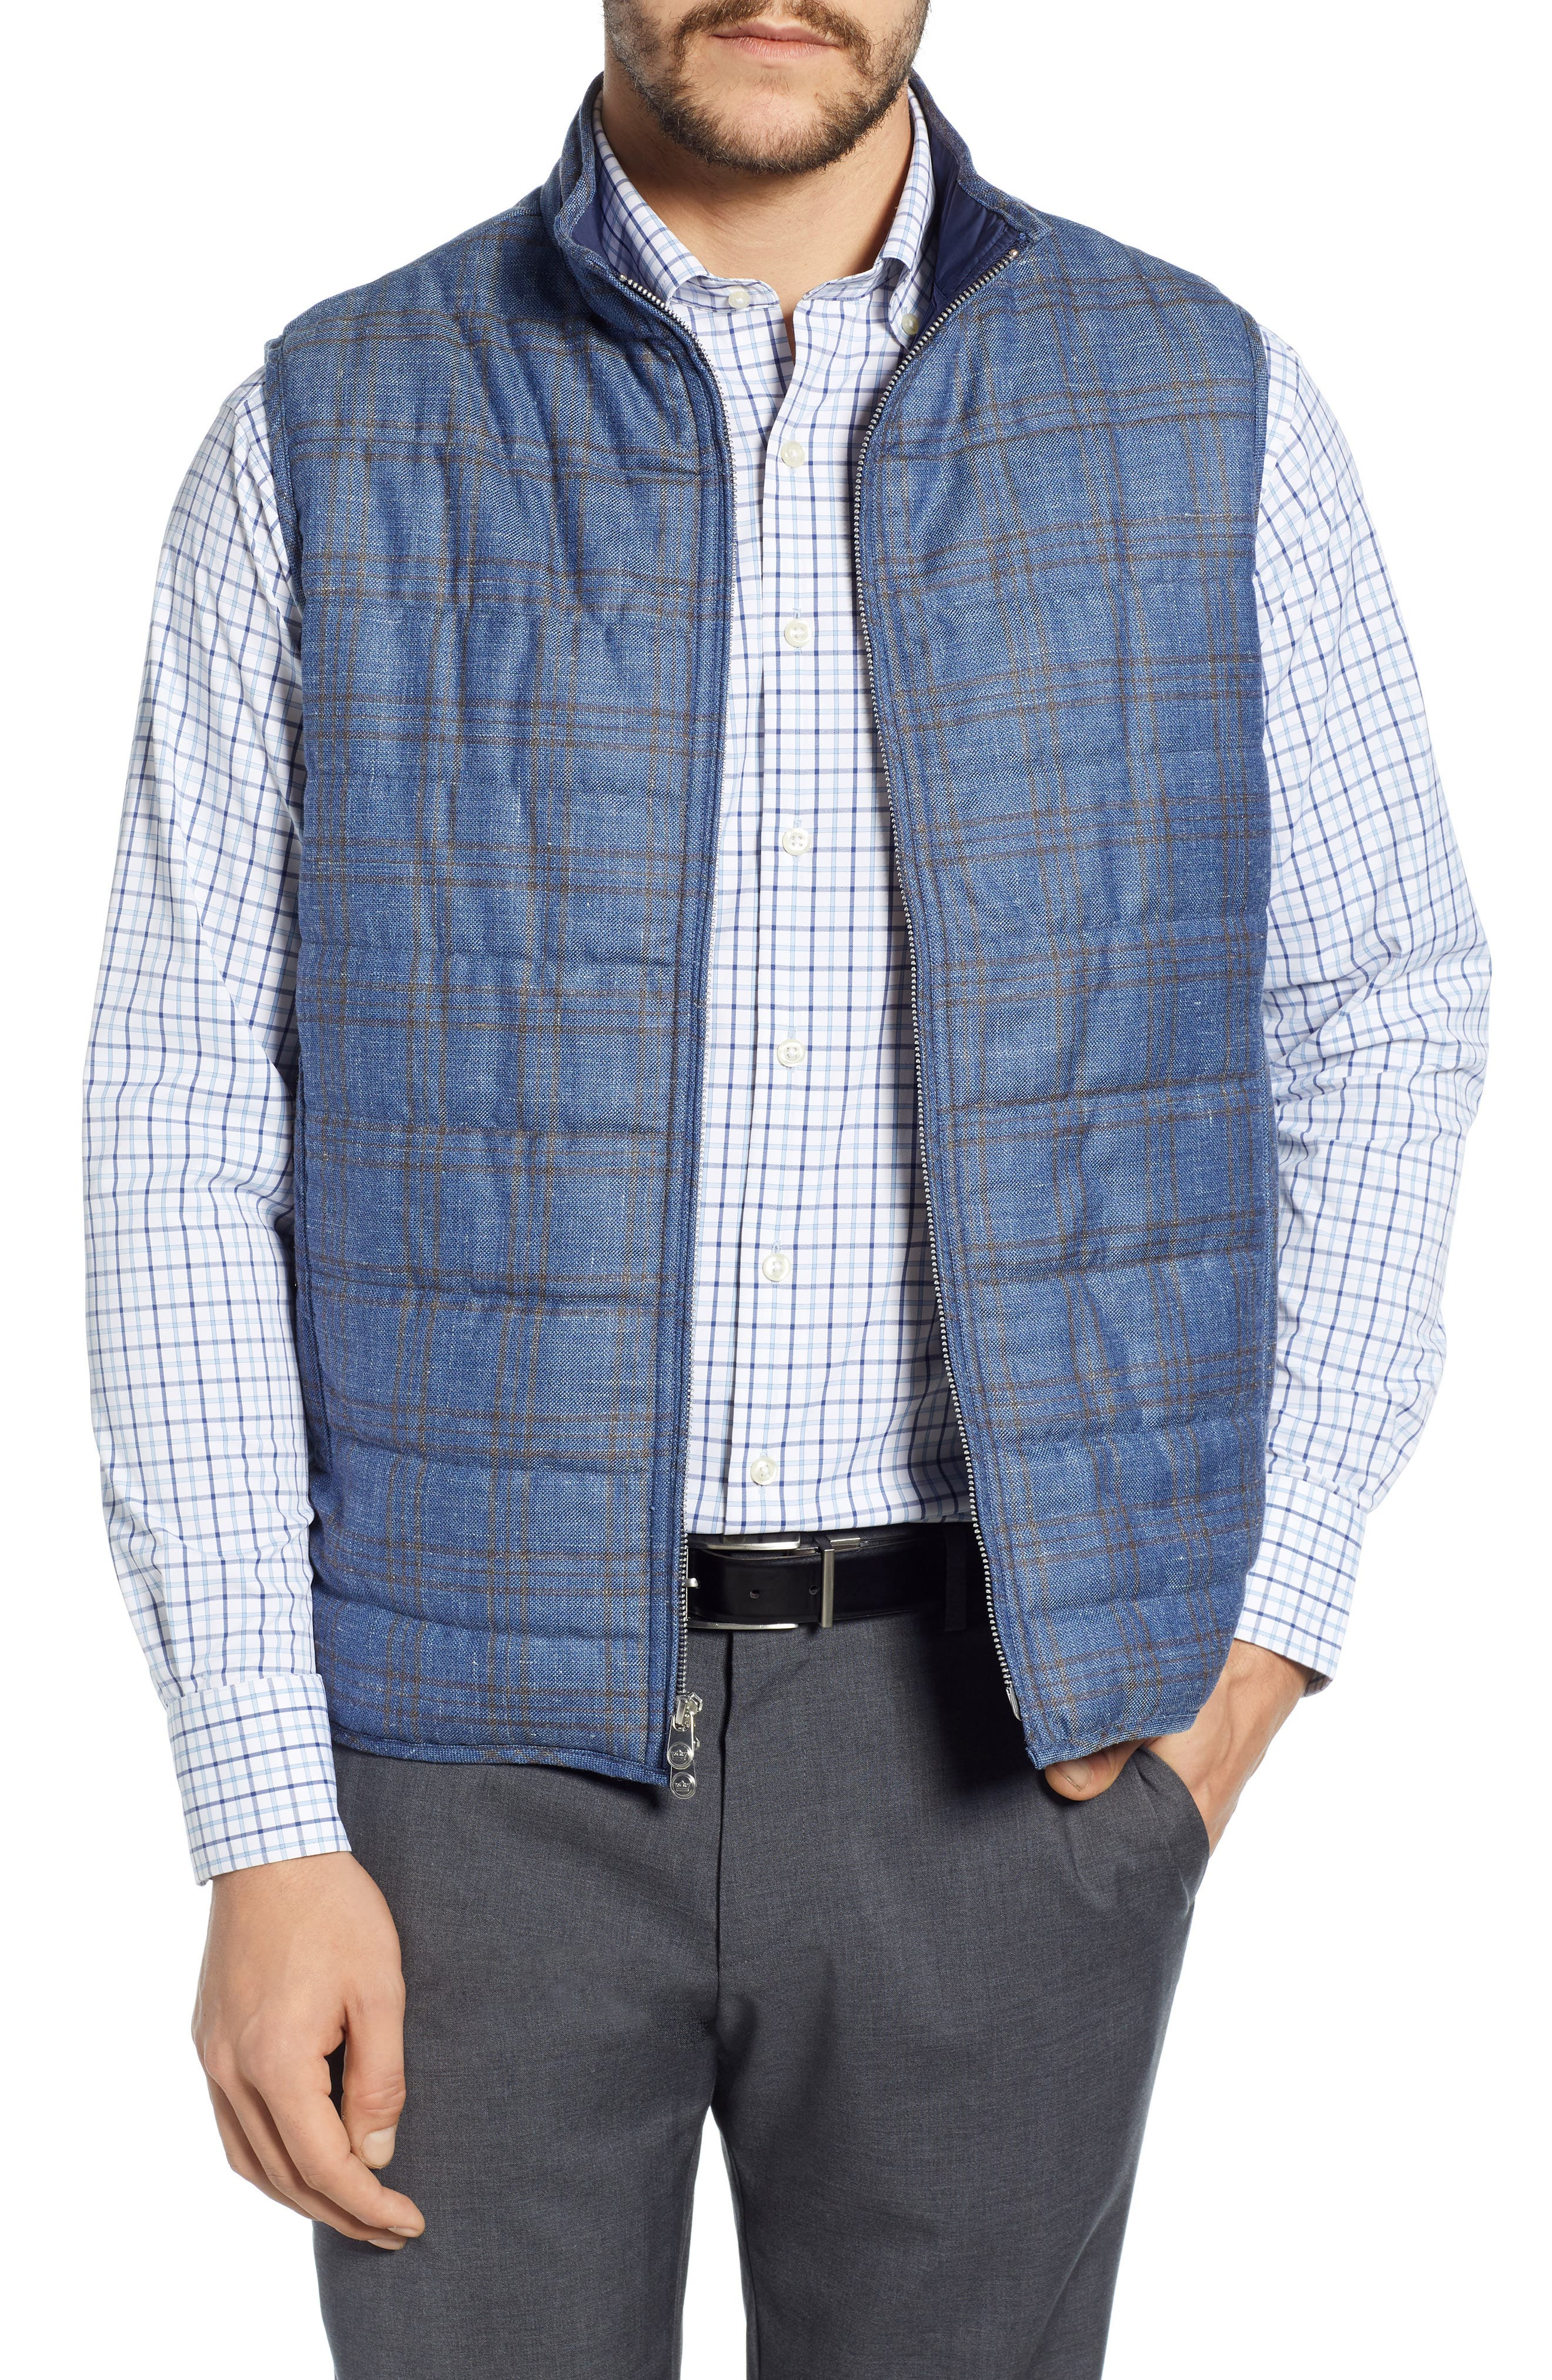 Peter Millar Springtime Countryside Quilted Wool Vest, Blue